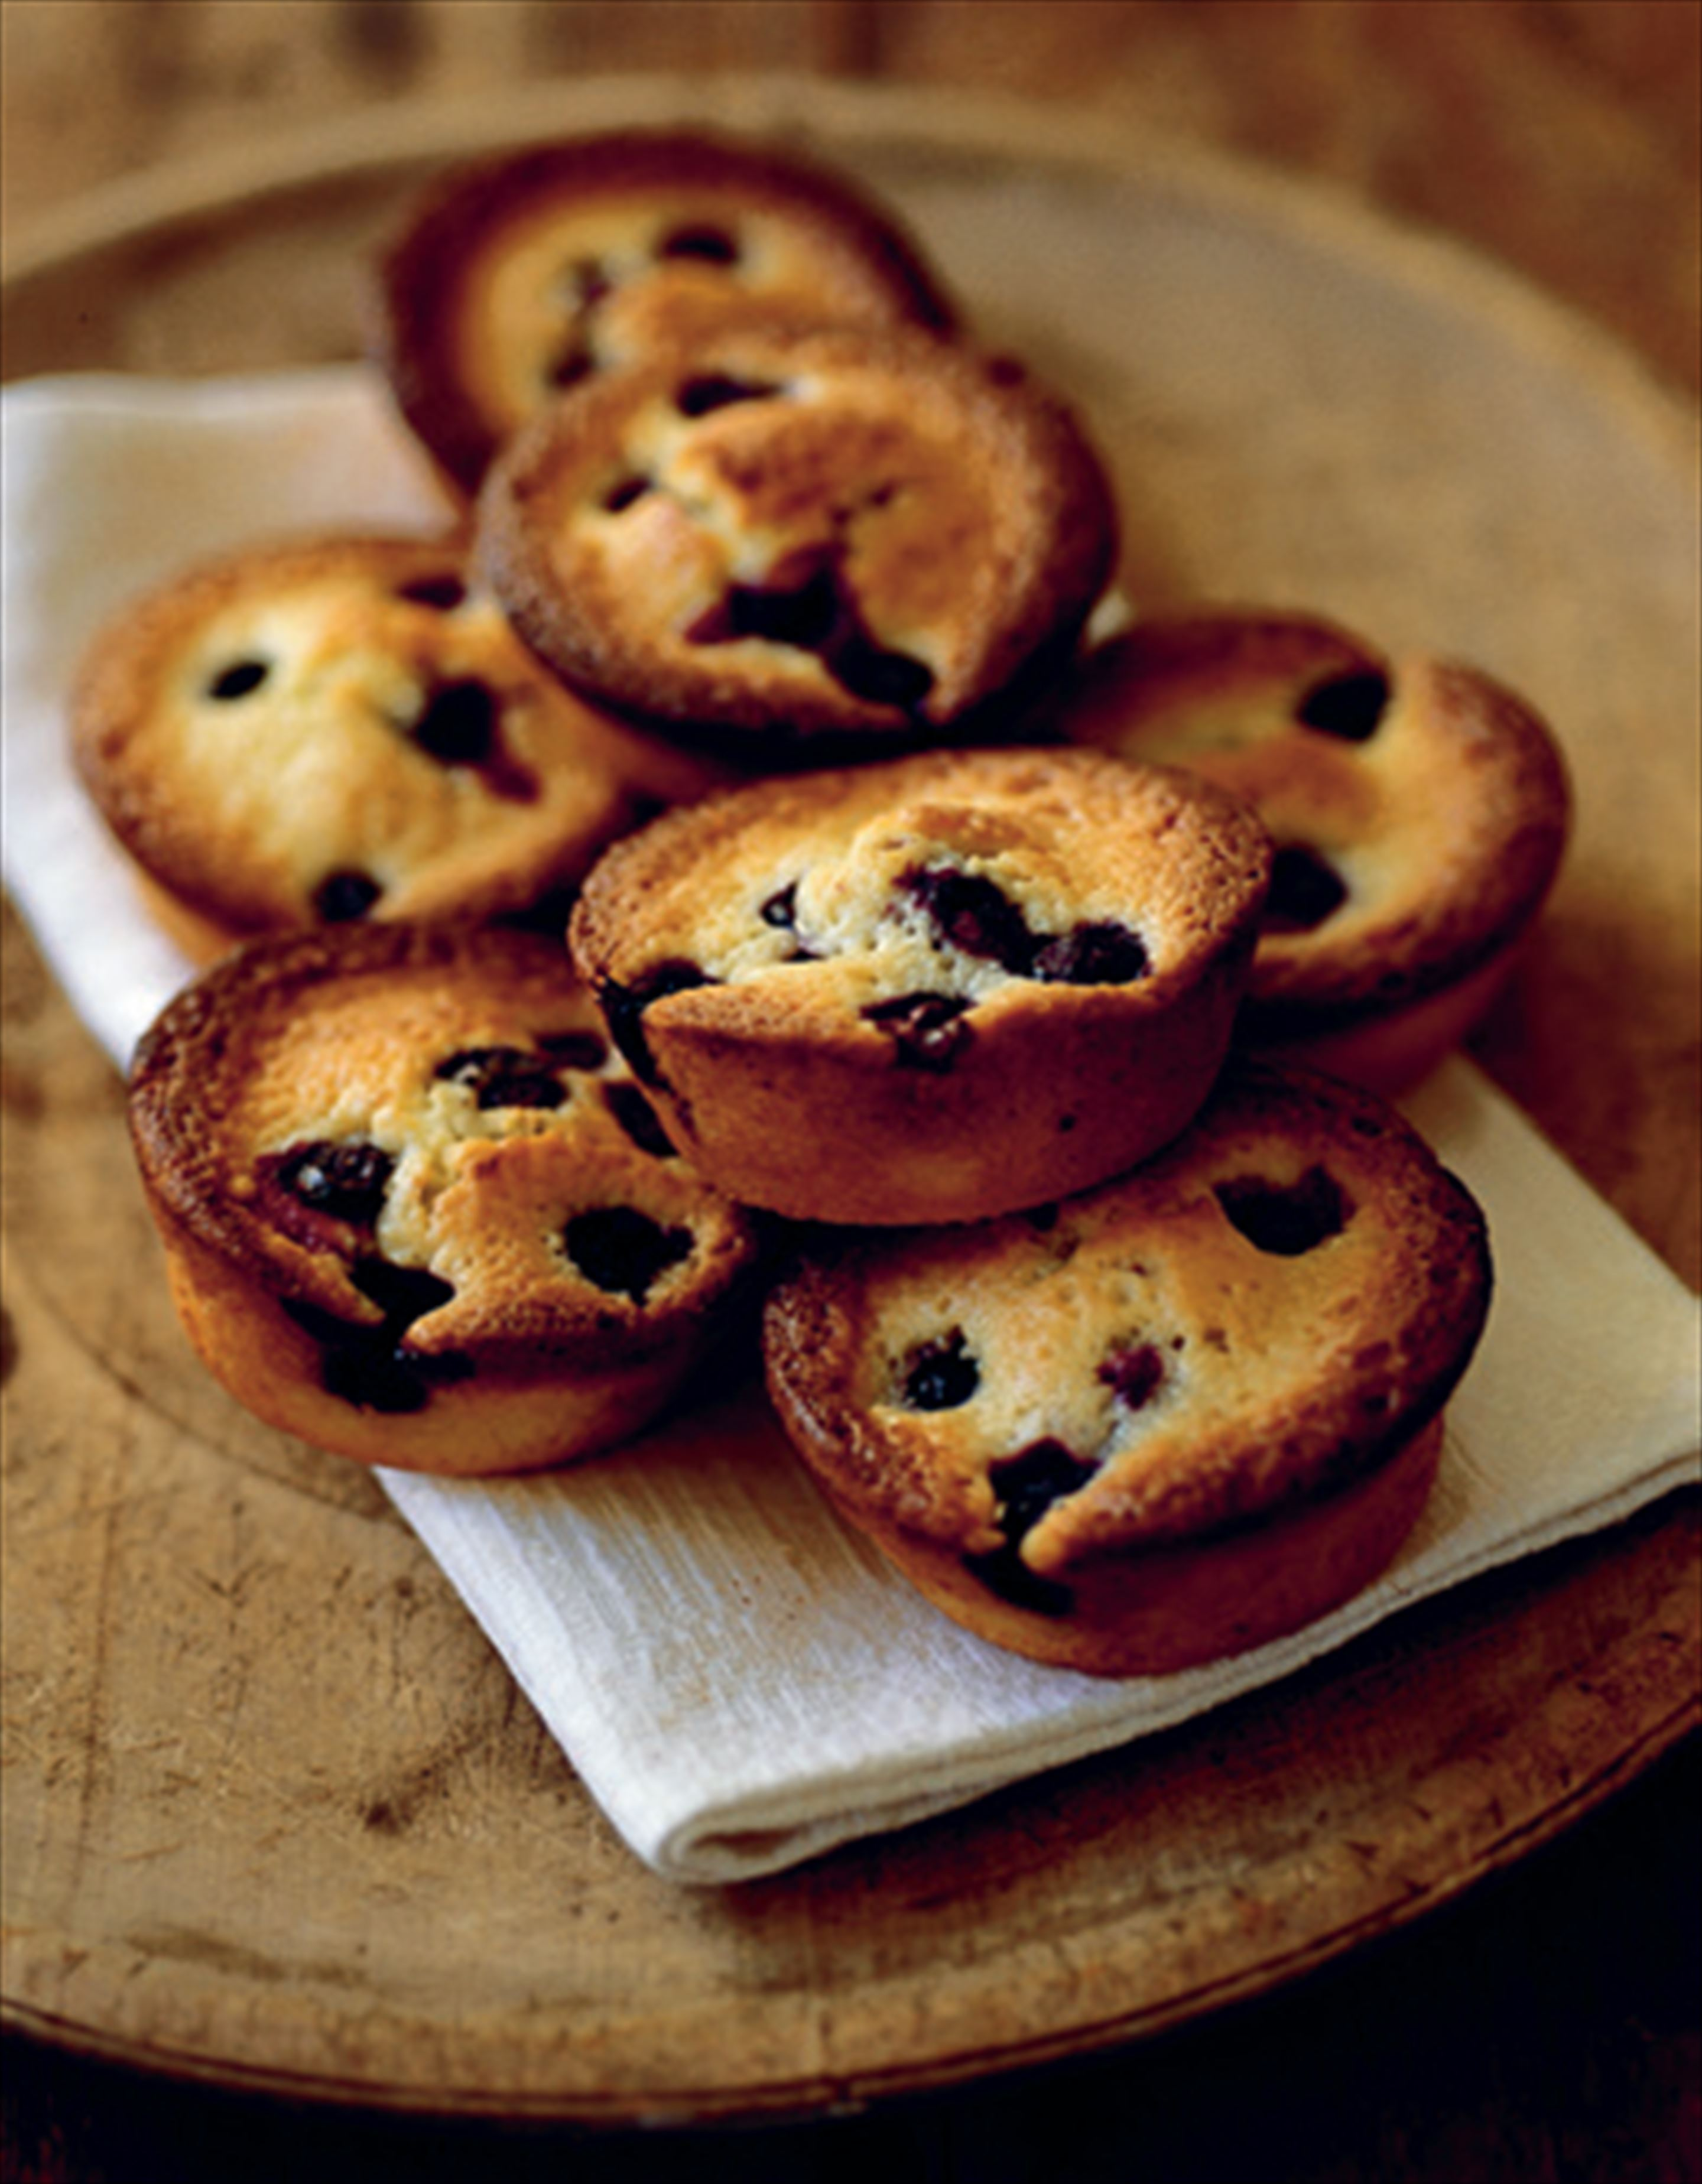 Almond blueberry muffins